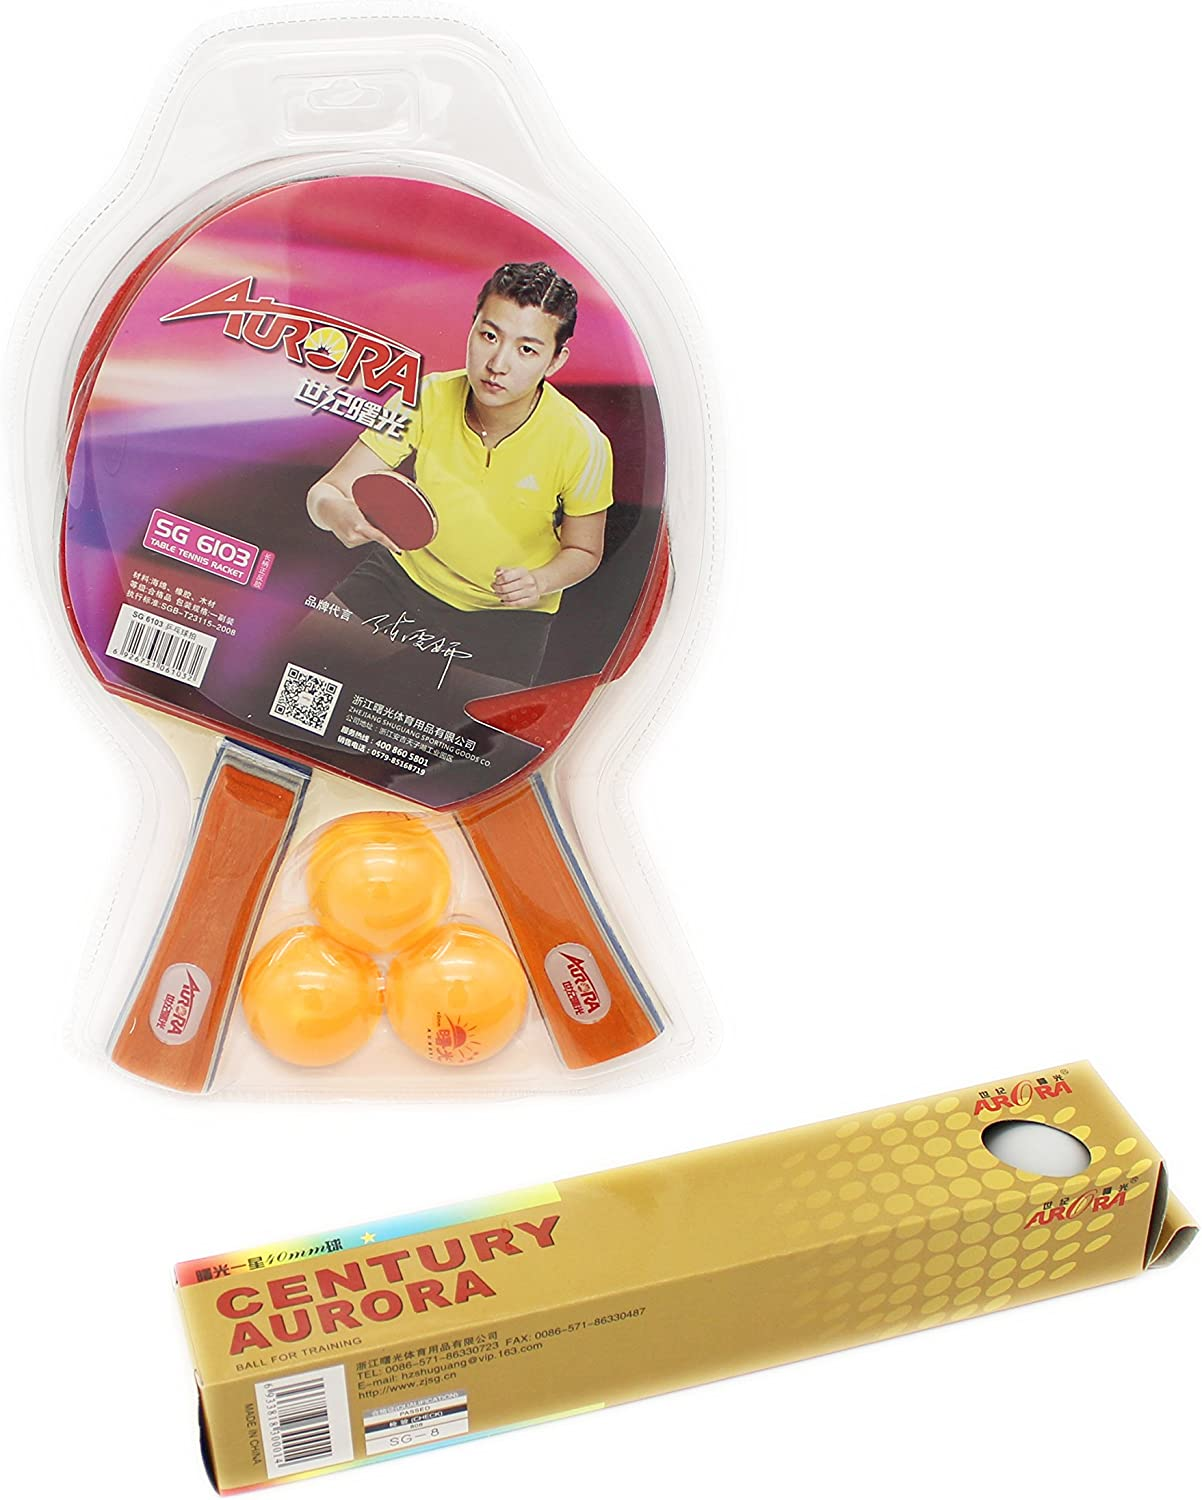 Rackets and Balls SAHE PRODUCTS Authentic Table Tennis Paddles Fun-sports Professional Racket - Rubber Coated Wooden Ping Pong Bat Athlete Experts Unisex Table Tennis Set Blue